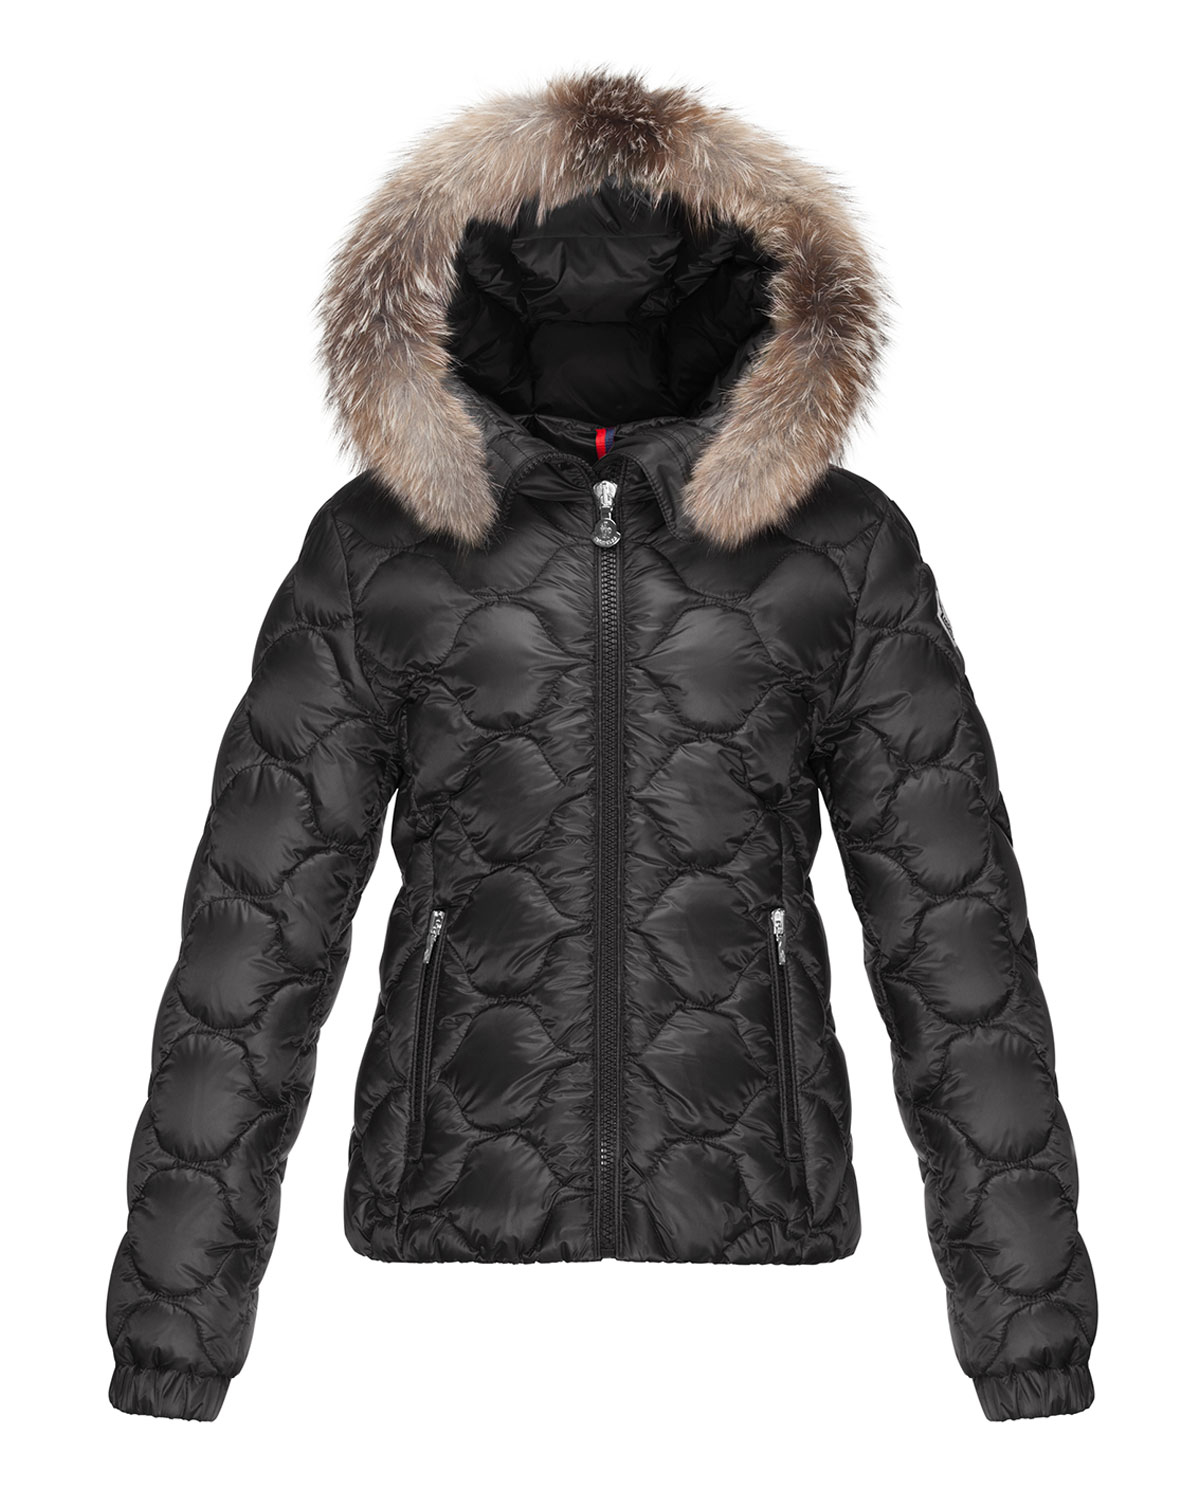 More Warm/Safe - All the down puffer jackets are based on more than 90% of white duck down filling and after repeated washing, disinfection and drying, without bleach, the quality is the natural and p.